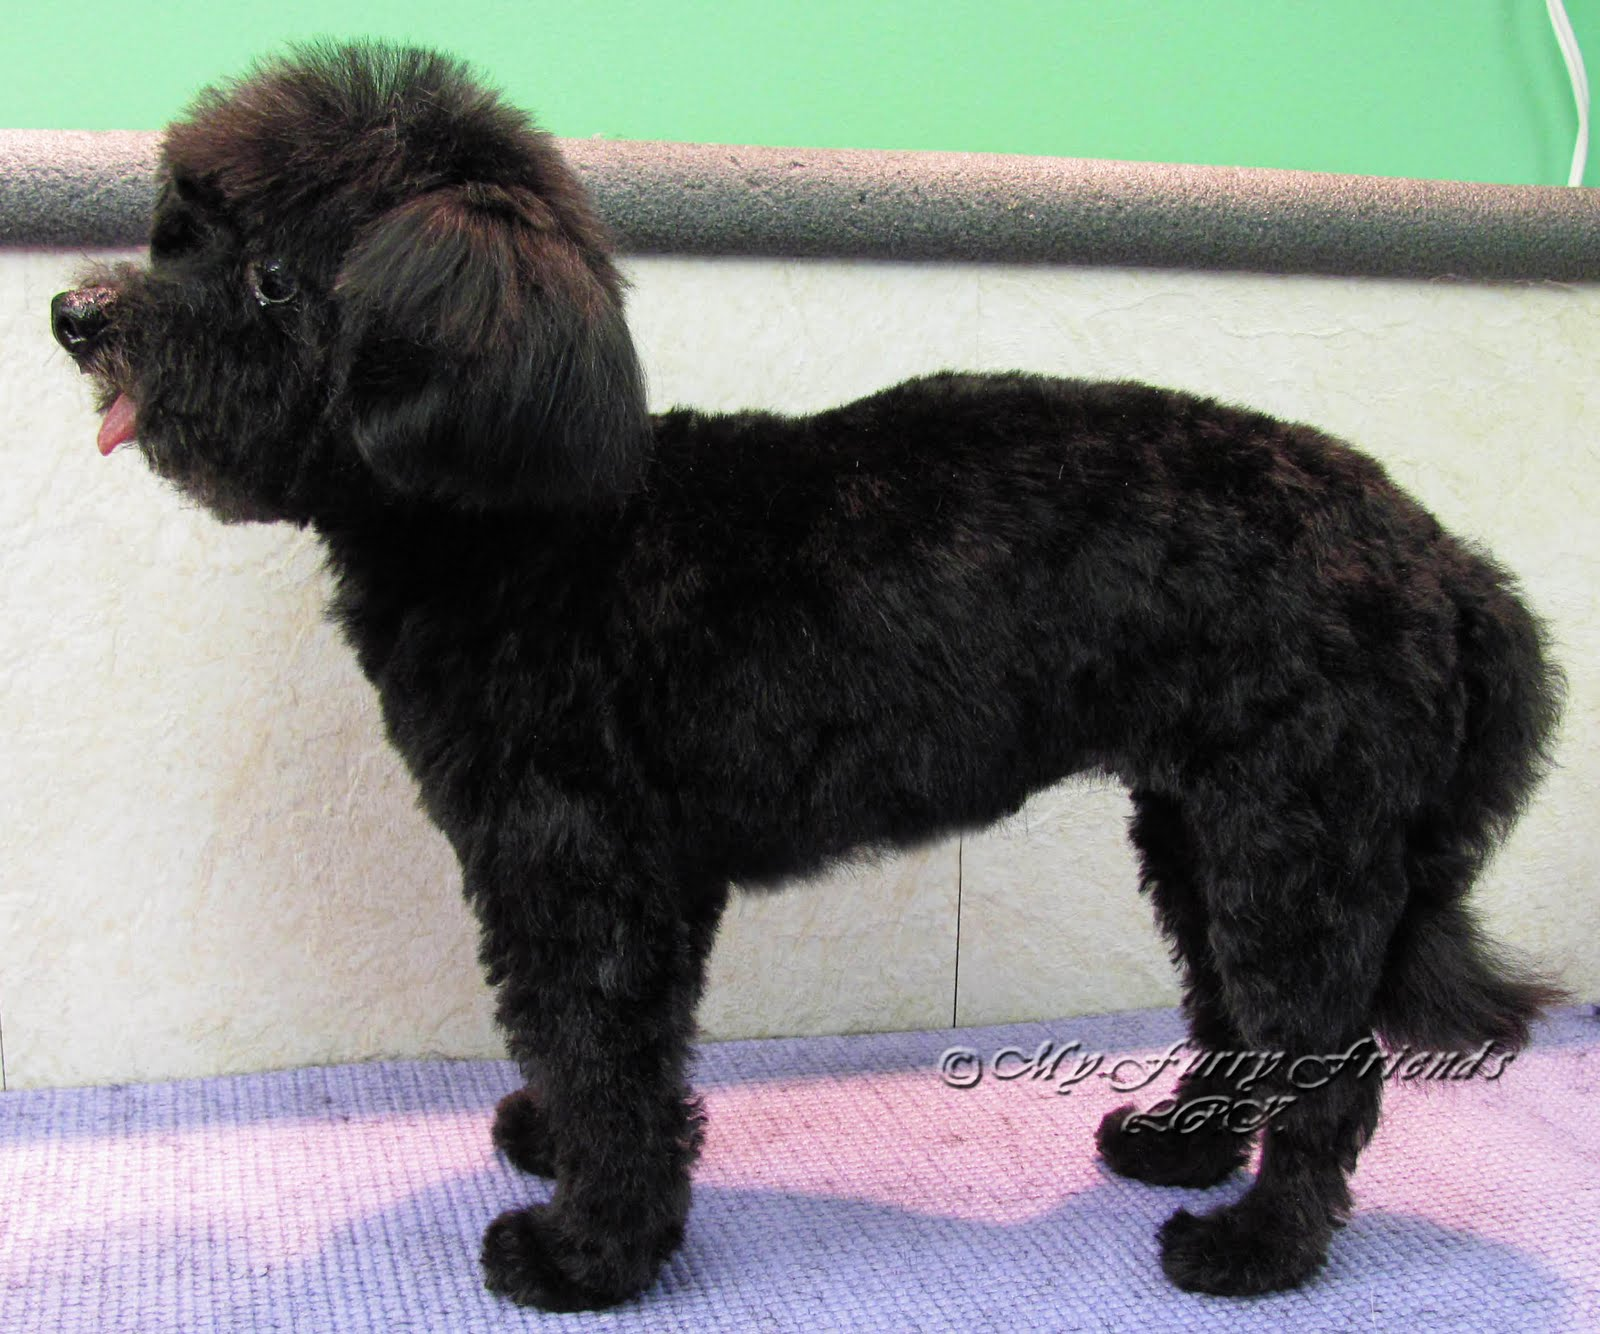 Toy Black Poodle Haircuts Images & Pictures - Becuo